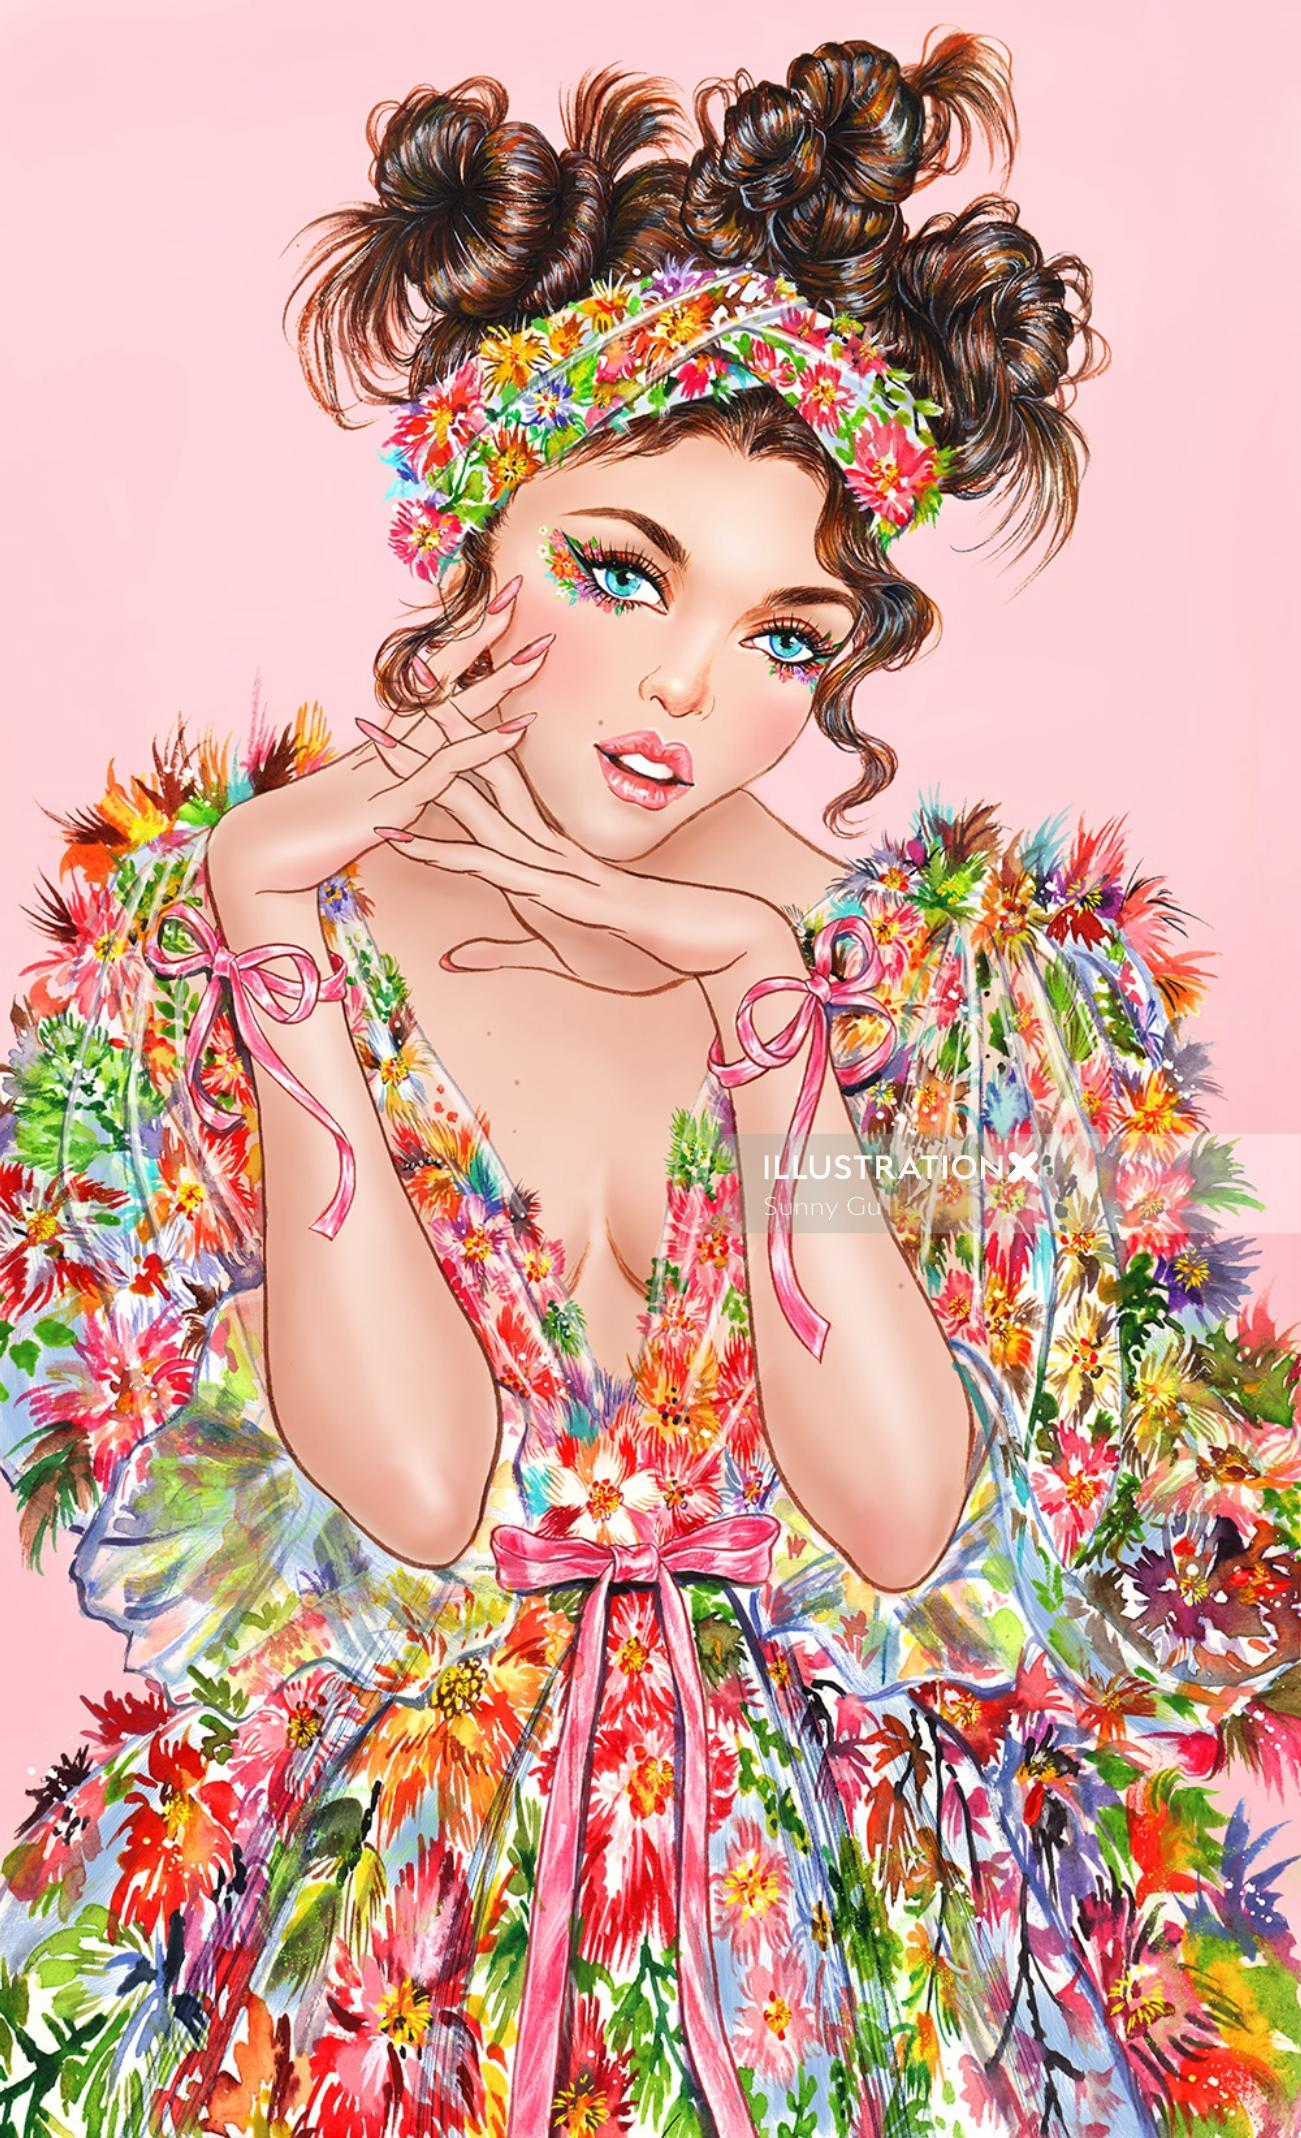 Portrait of glamorous lady in floral dress